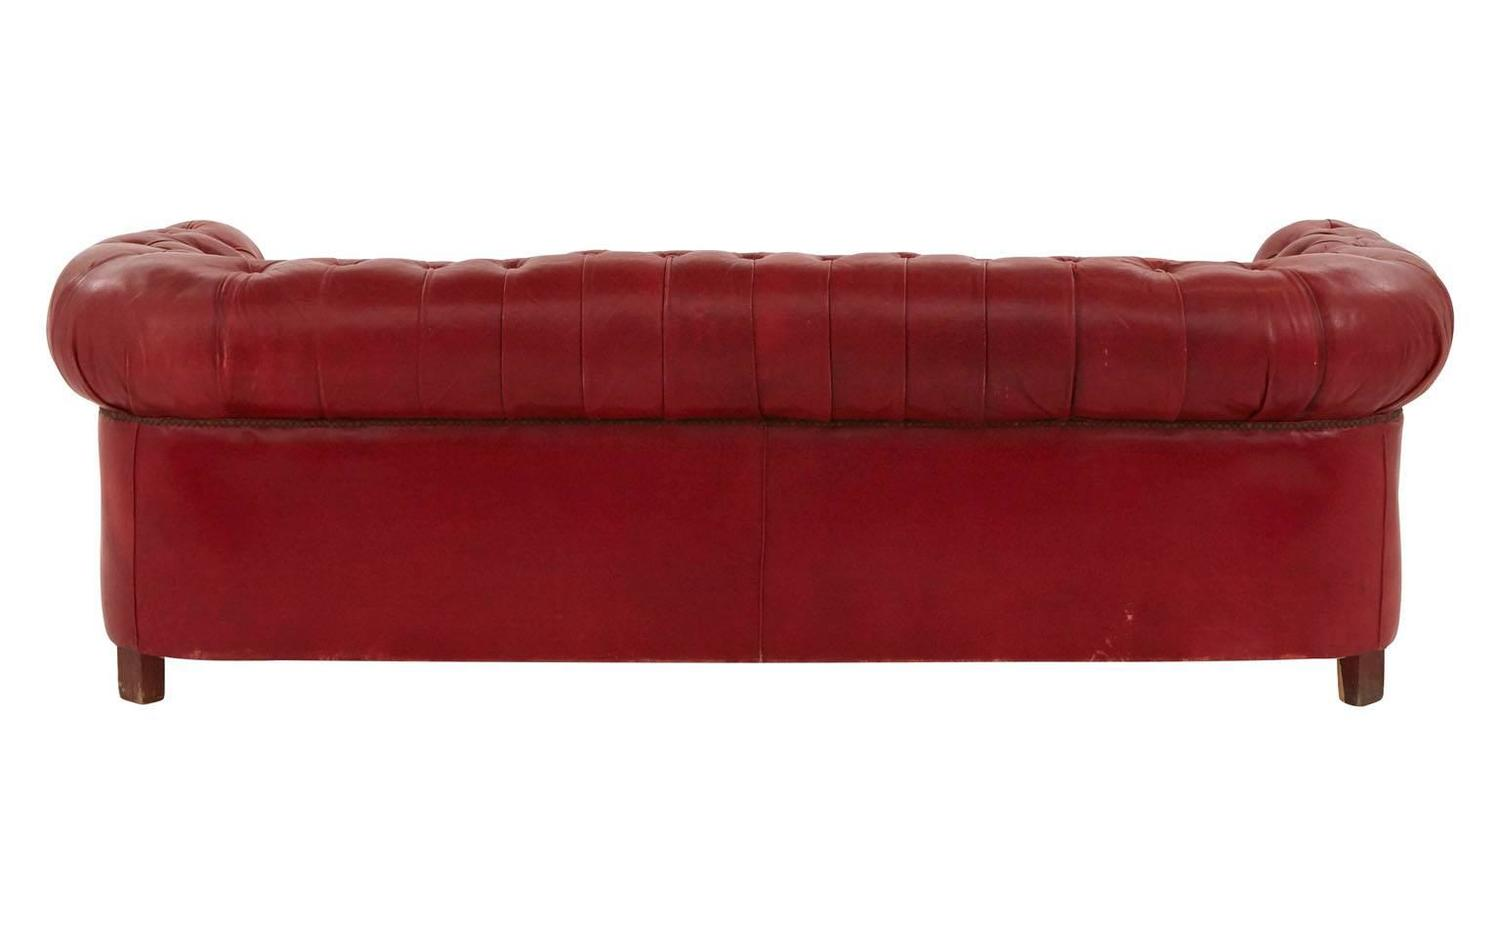 vintage chesterfield sofa for sale at 1stdibs